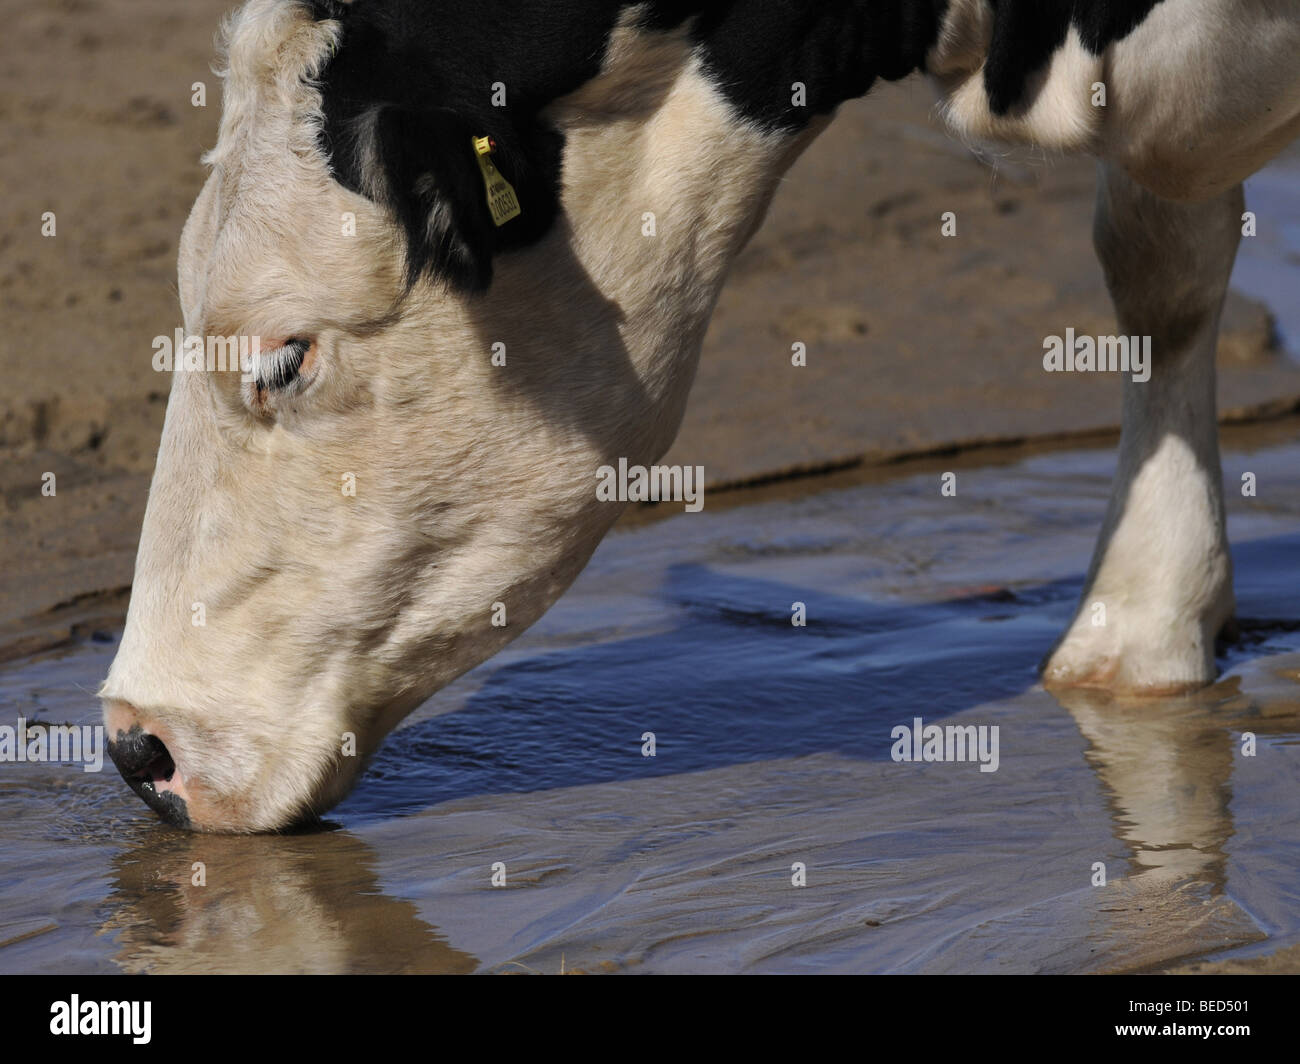 A friesian cow having a drink. - Stock Image